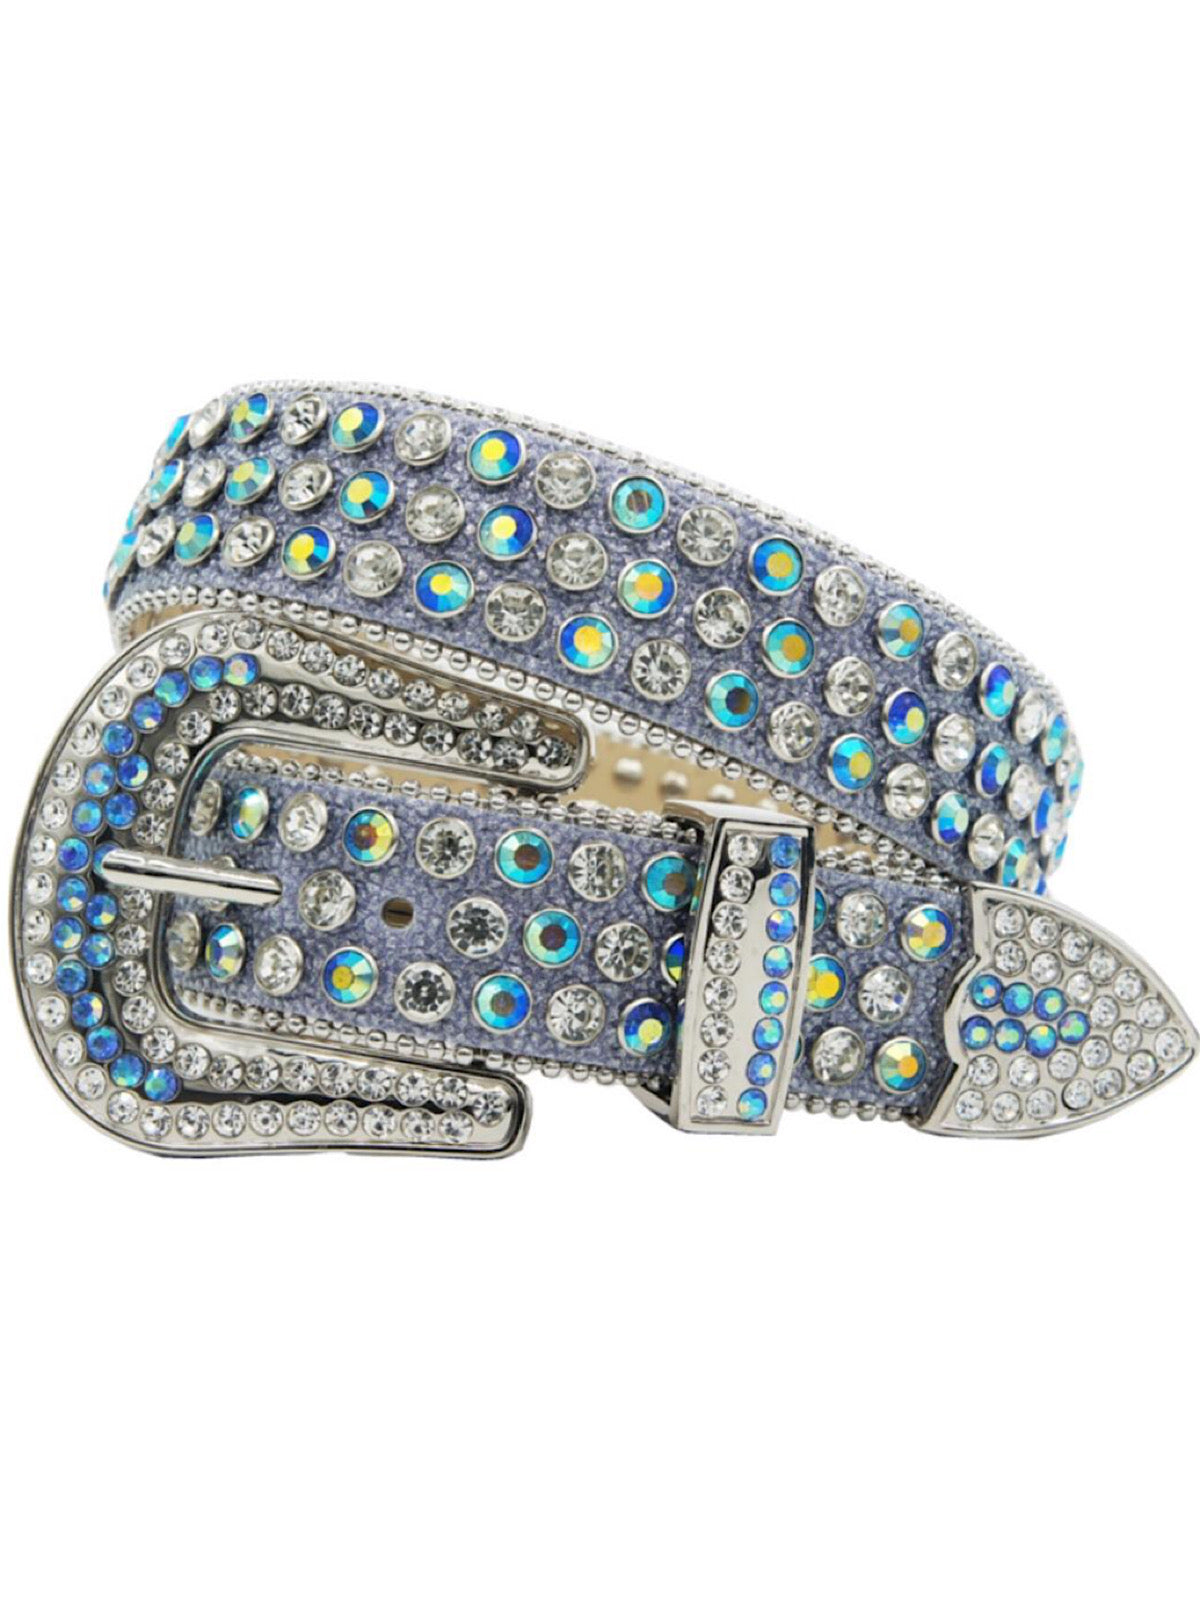 DNA Belt - Stones - Shiny Light Blue with Silver and Light Blue Stones